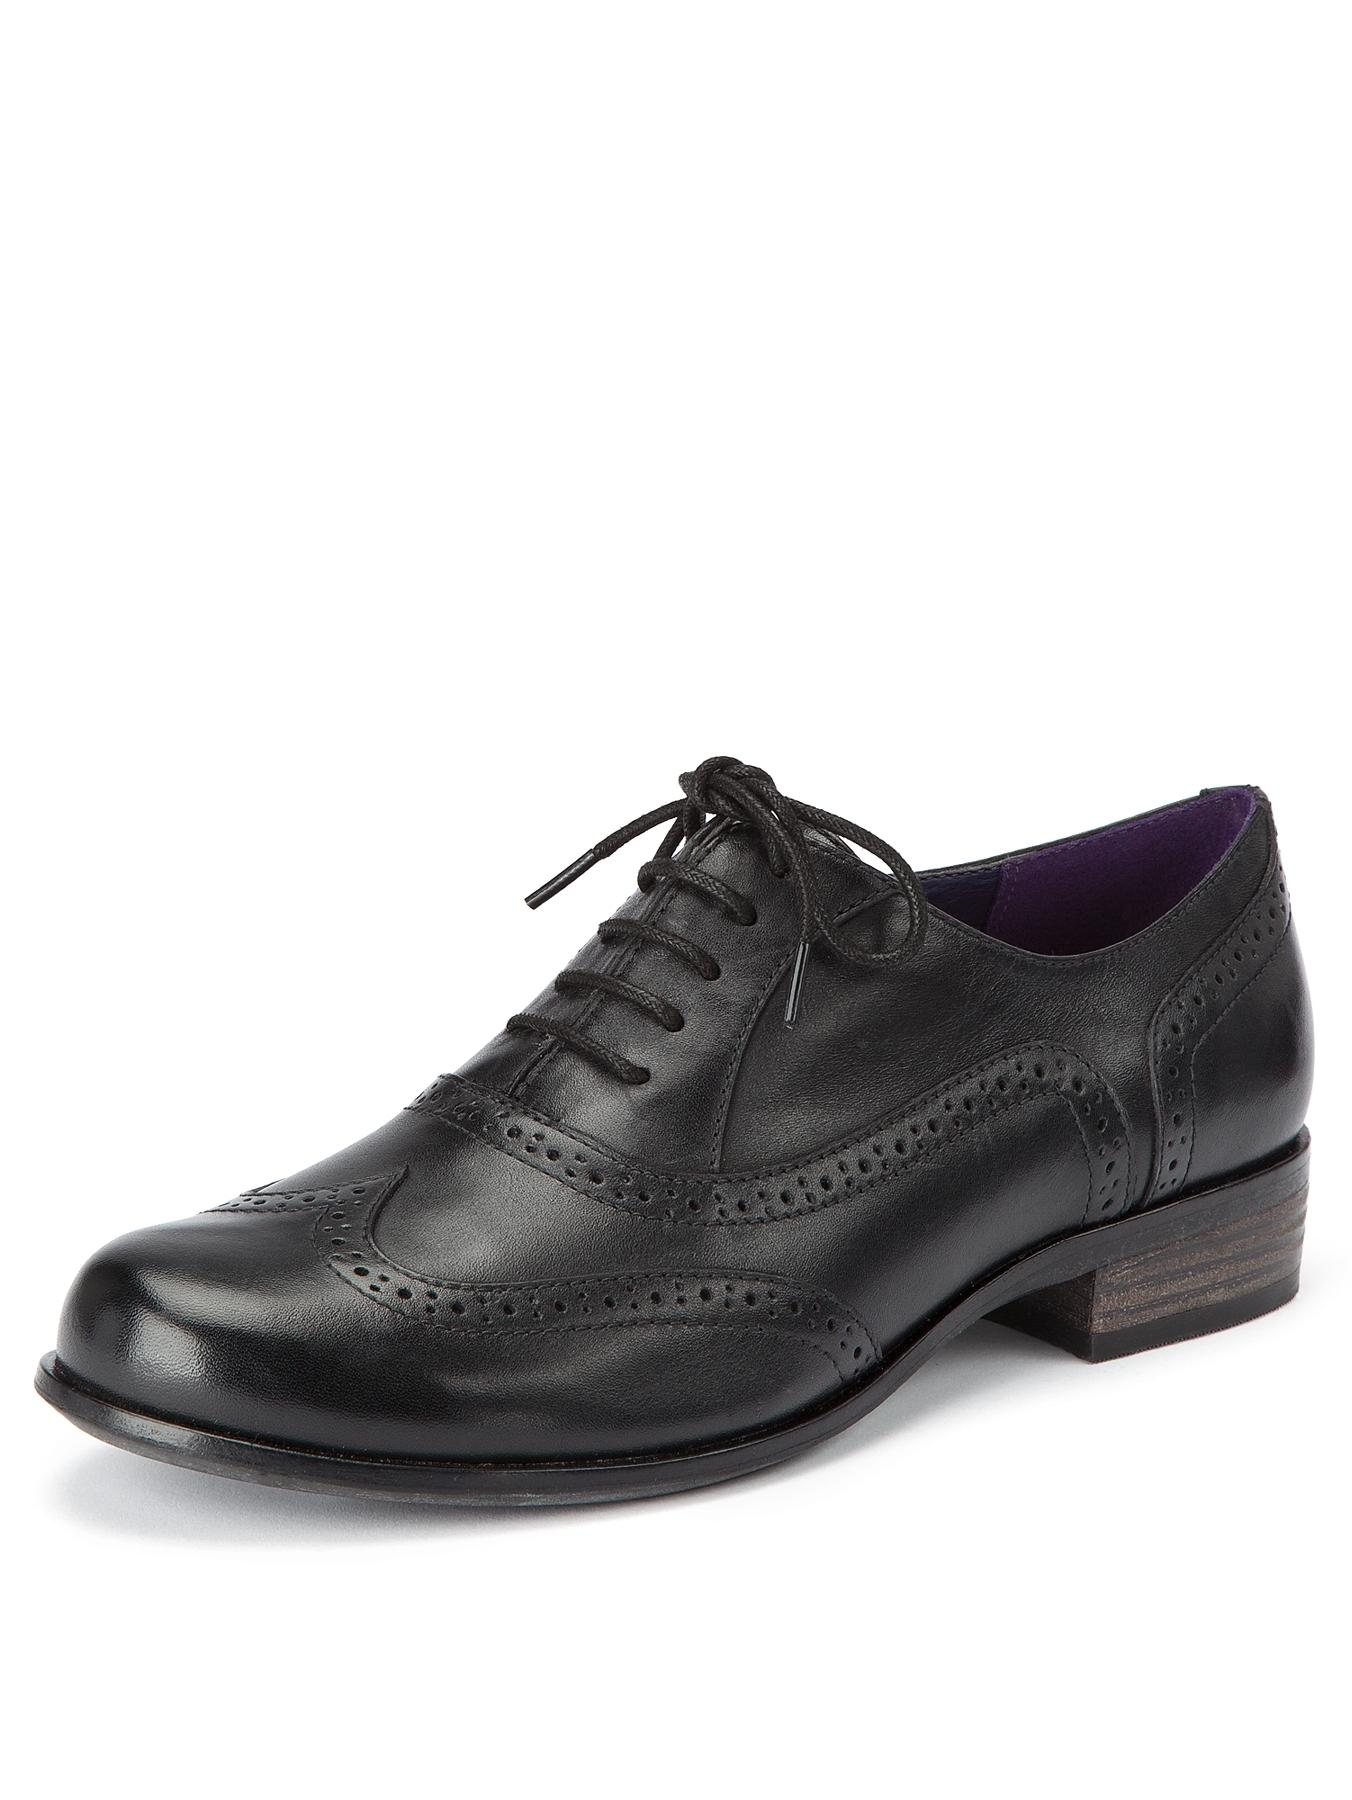 Hamble Oak Leather Brogues, Black